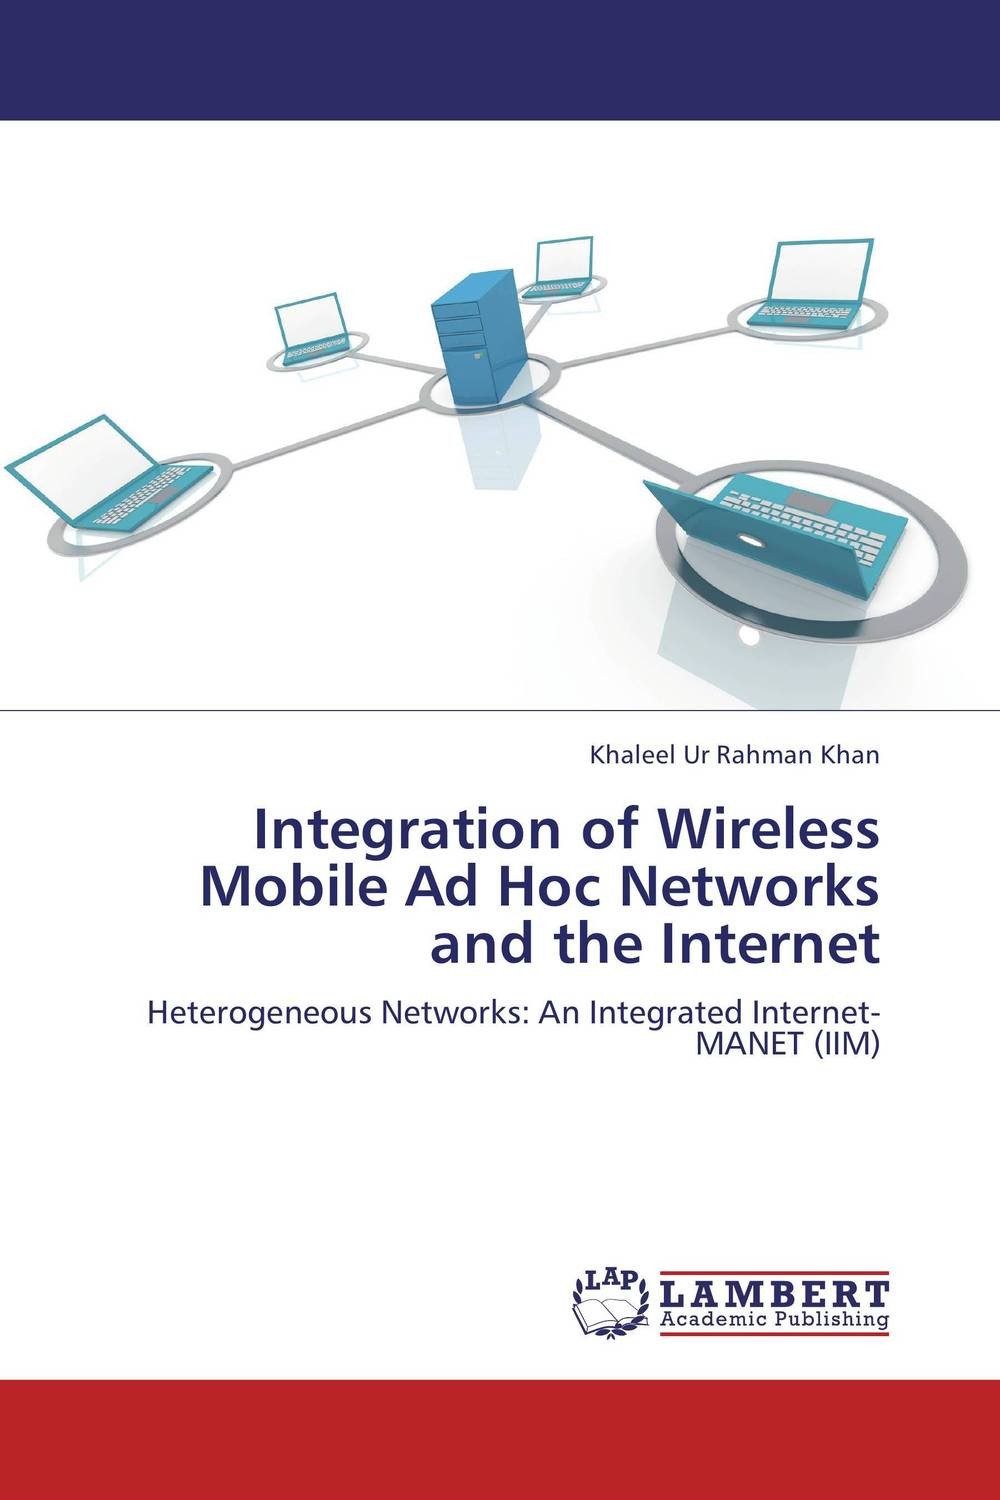 Integration of Wireless Mobile Ad Hoc Networks and the Internet